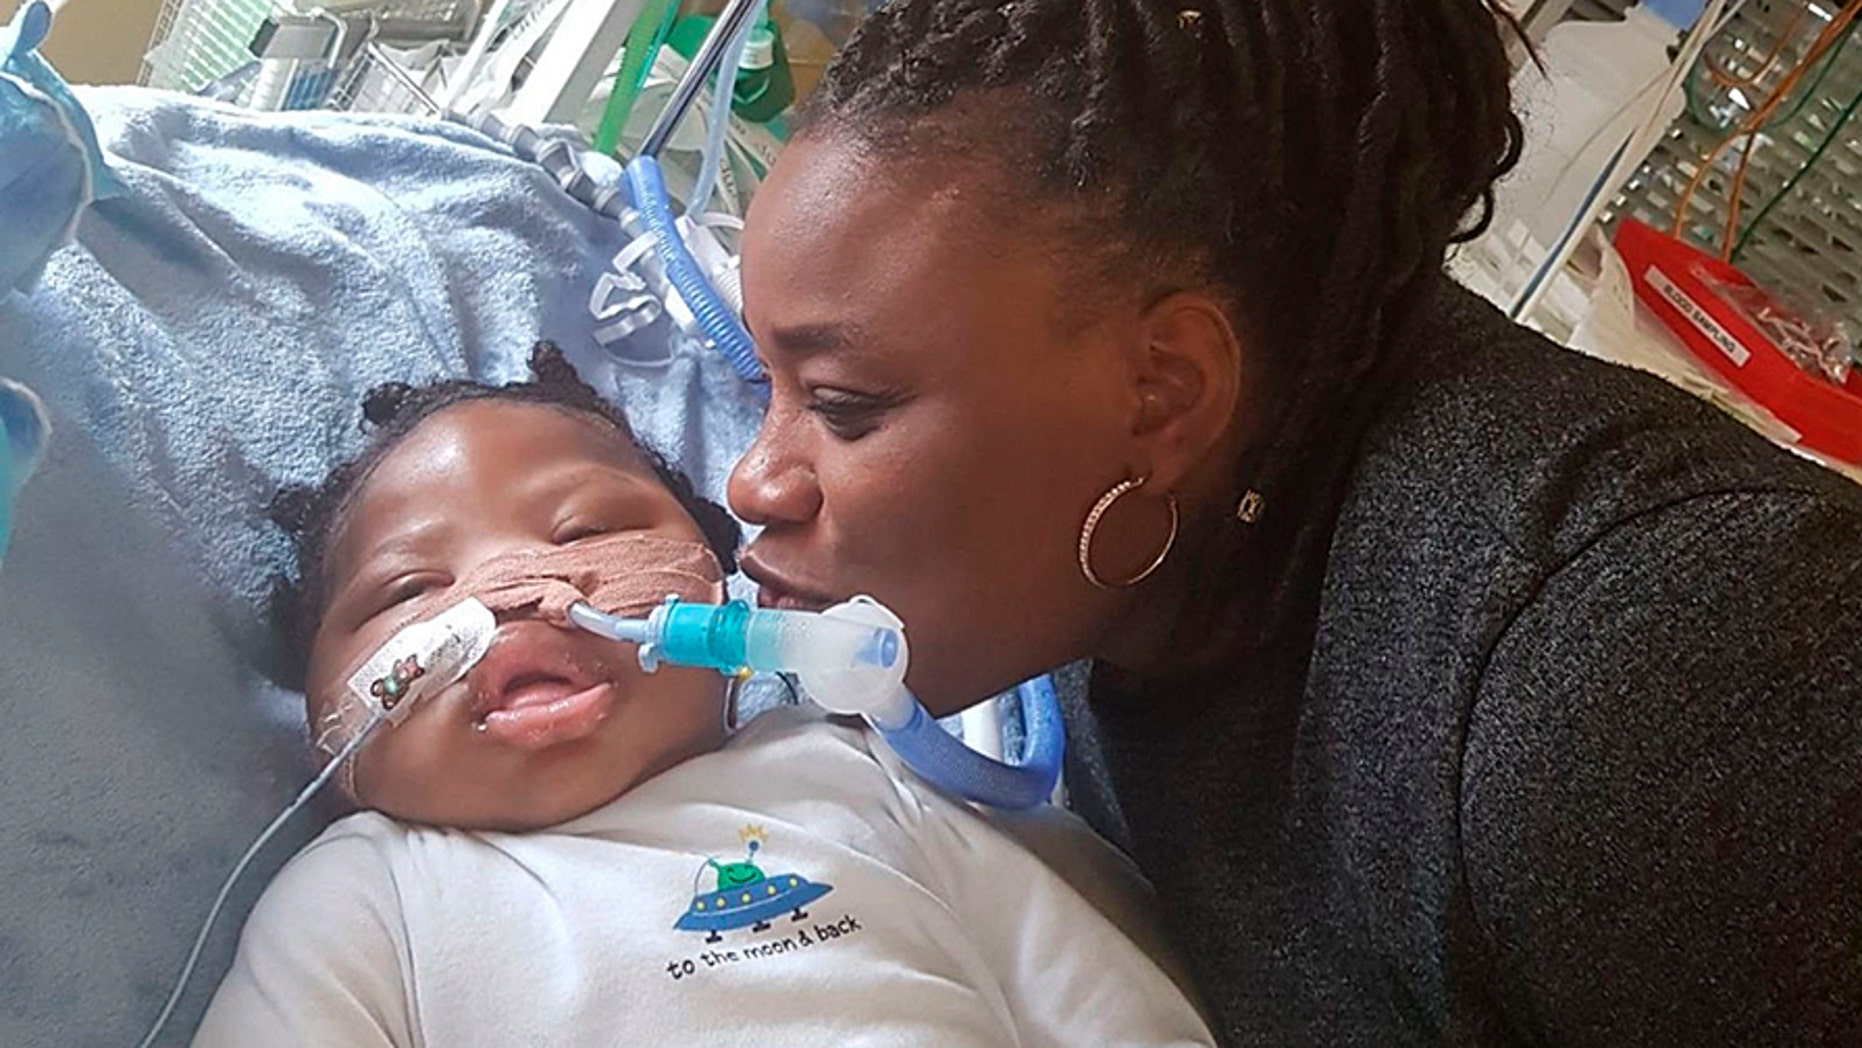 Isaiah Haastrup with his aunt Dahlia Thomas at King's College Hospital in London. A judge ruled that the 11-month-boy could be taken off life support despite the parents' objection.